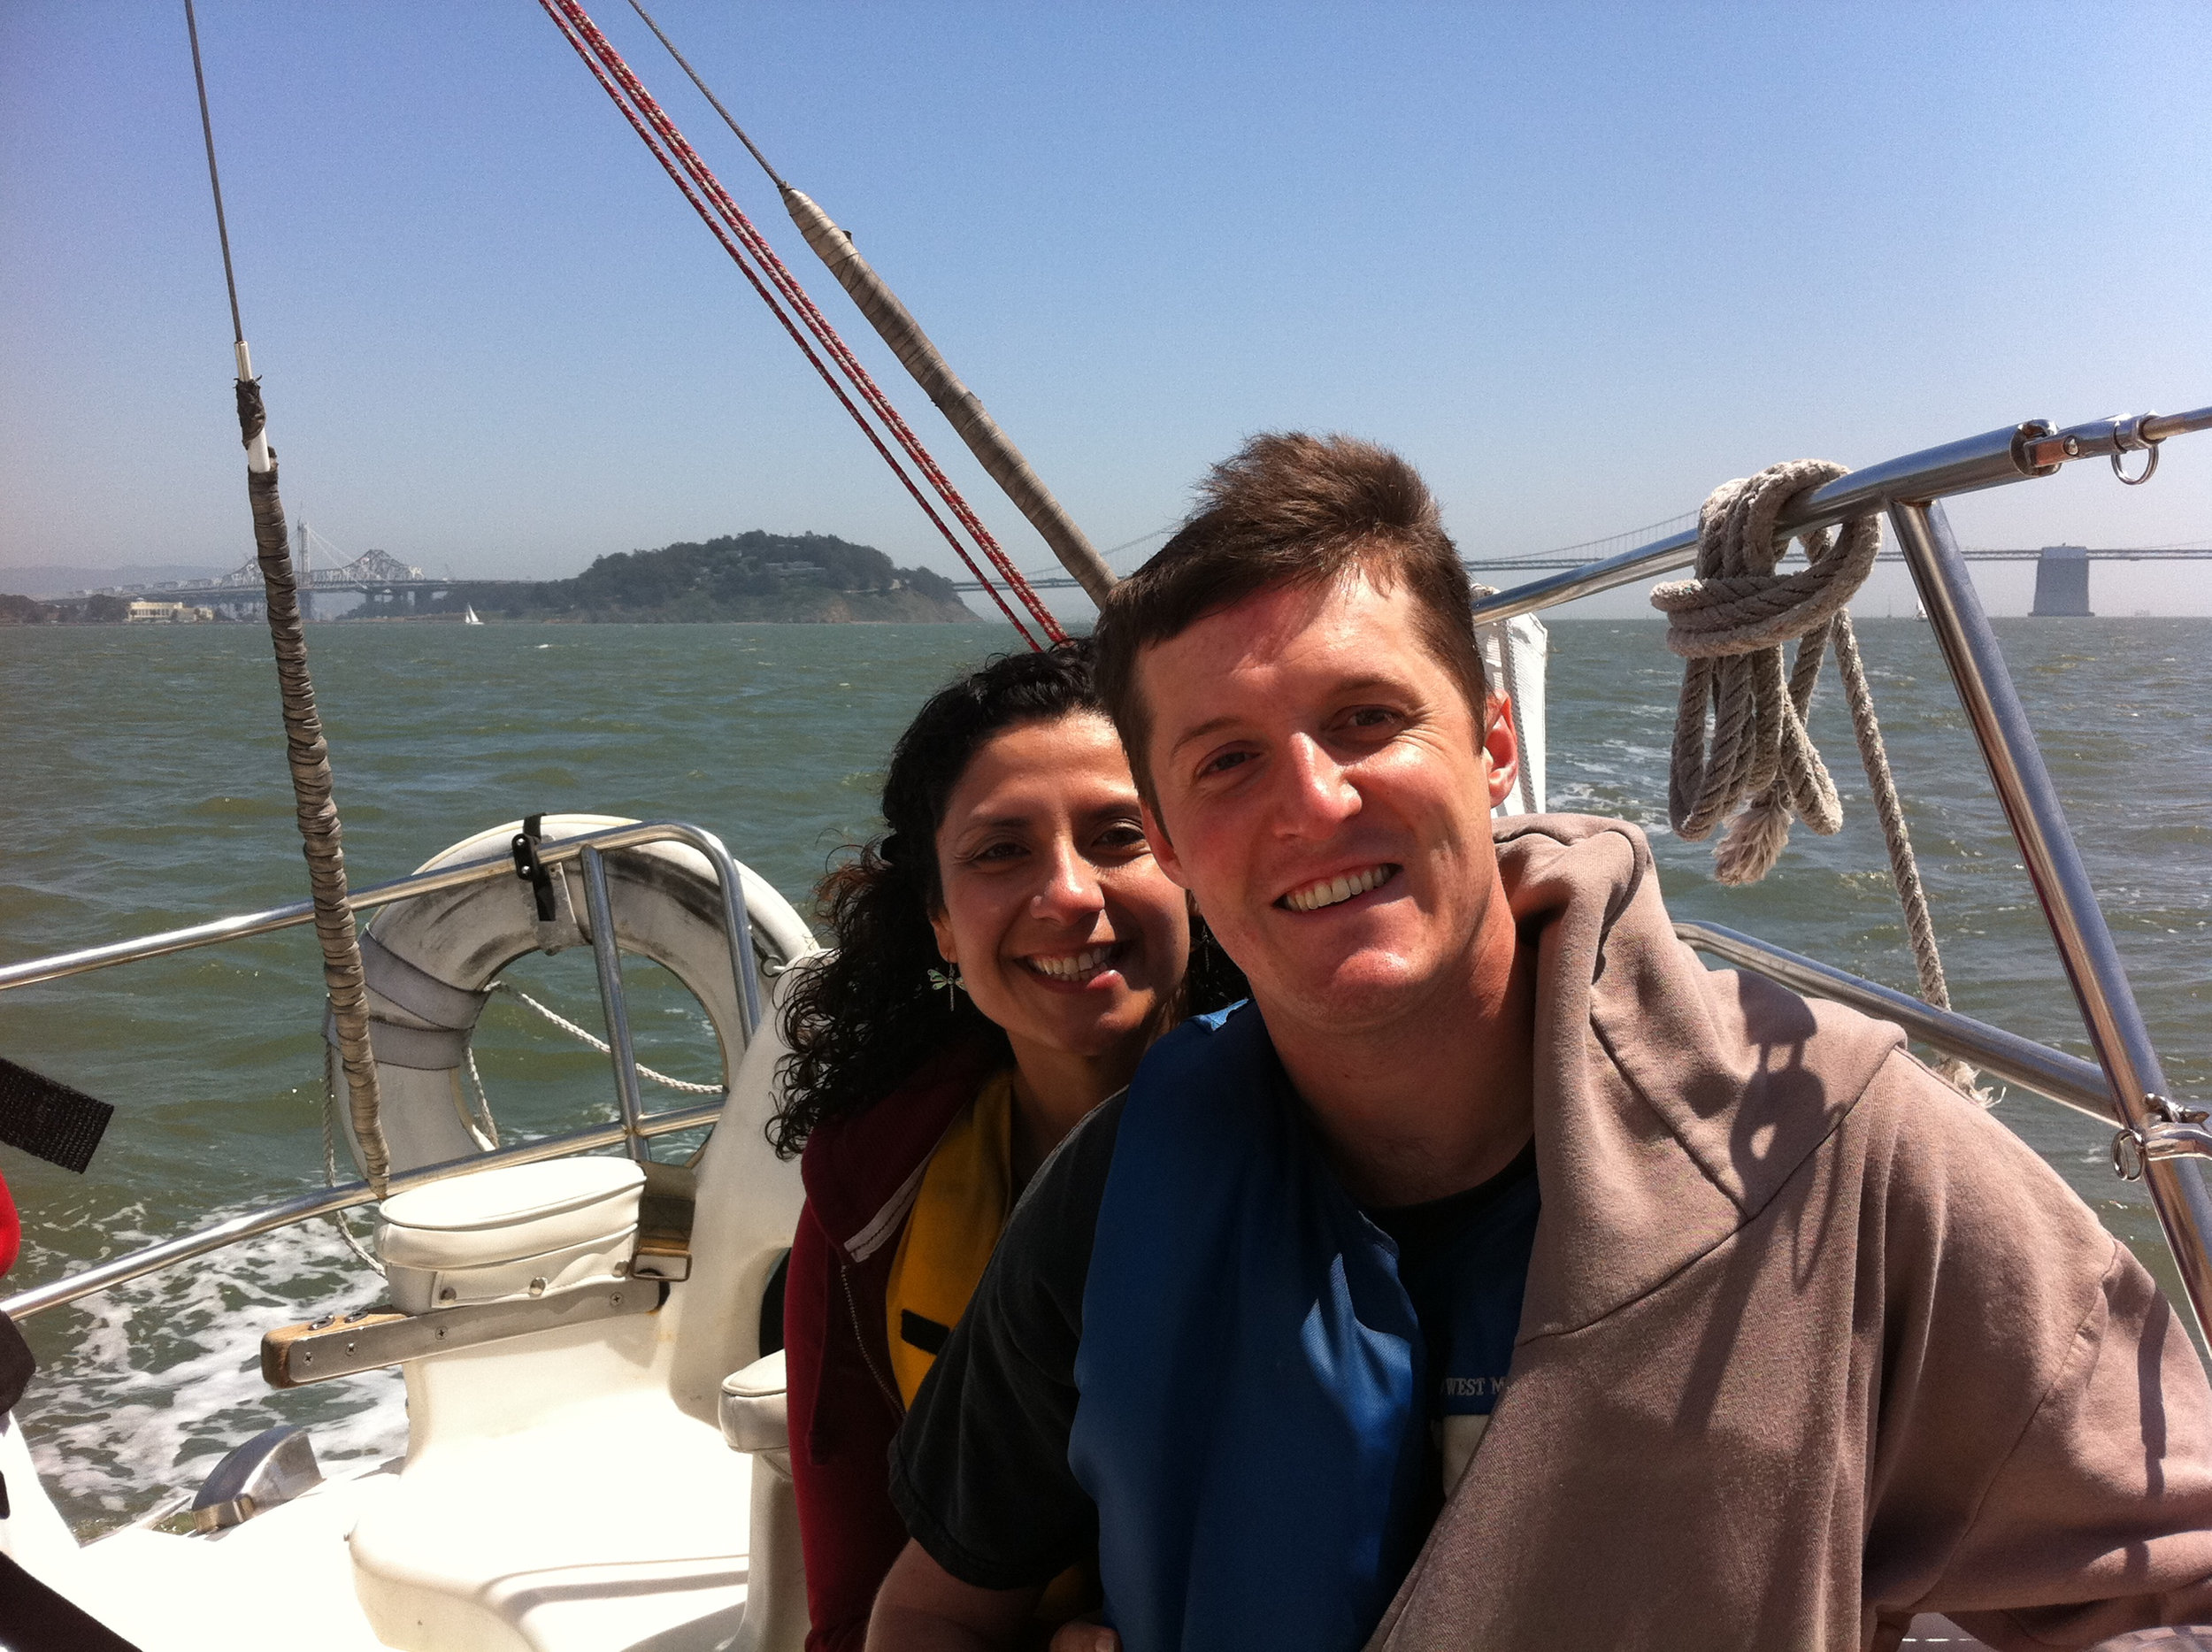 We love to sail with the Bay Area Association of Disabled Sailors.